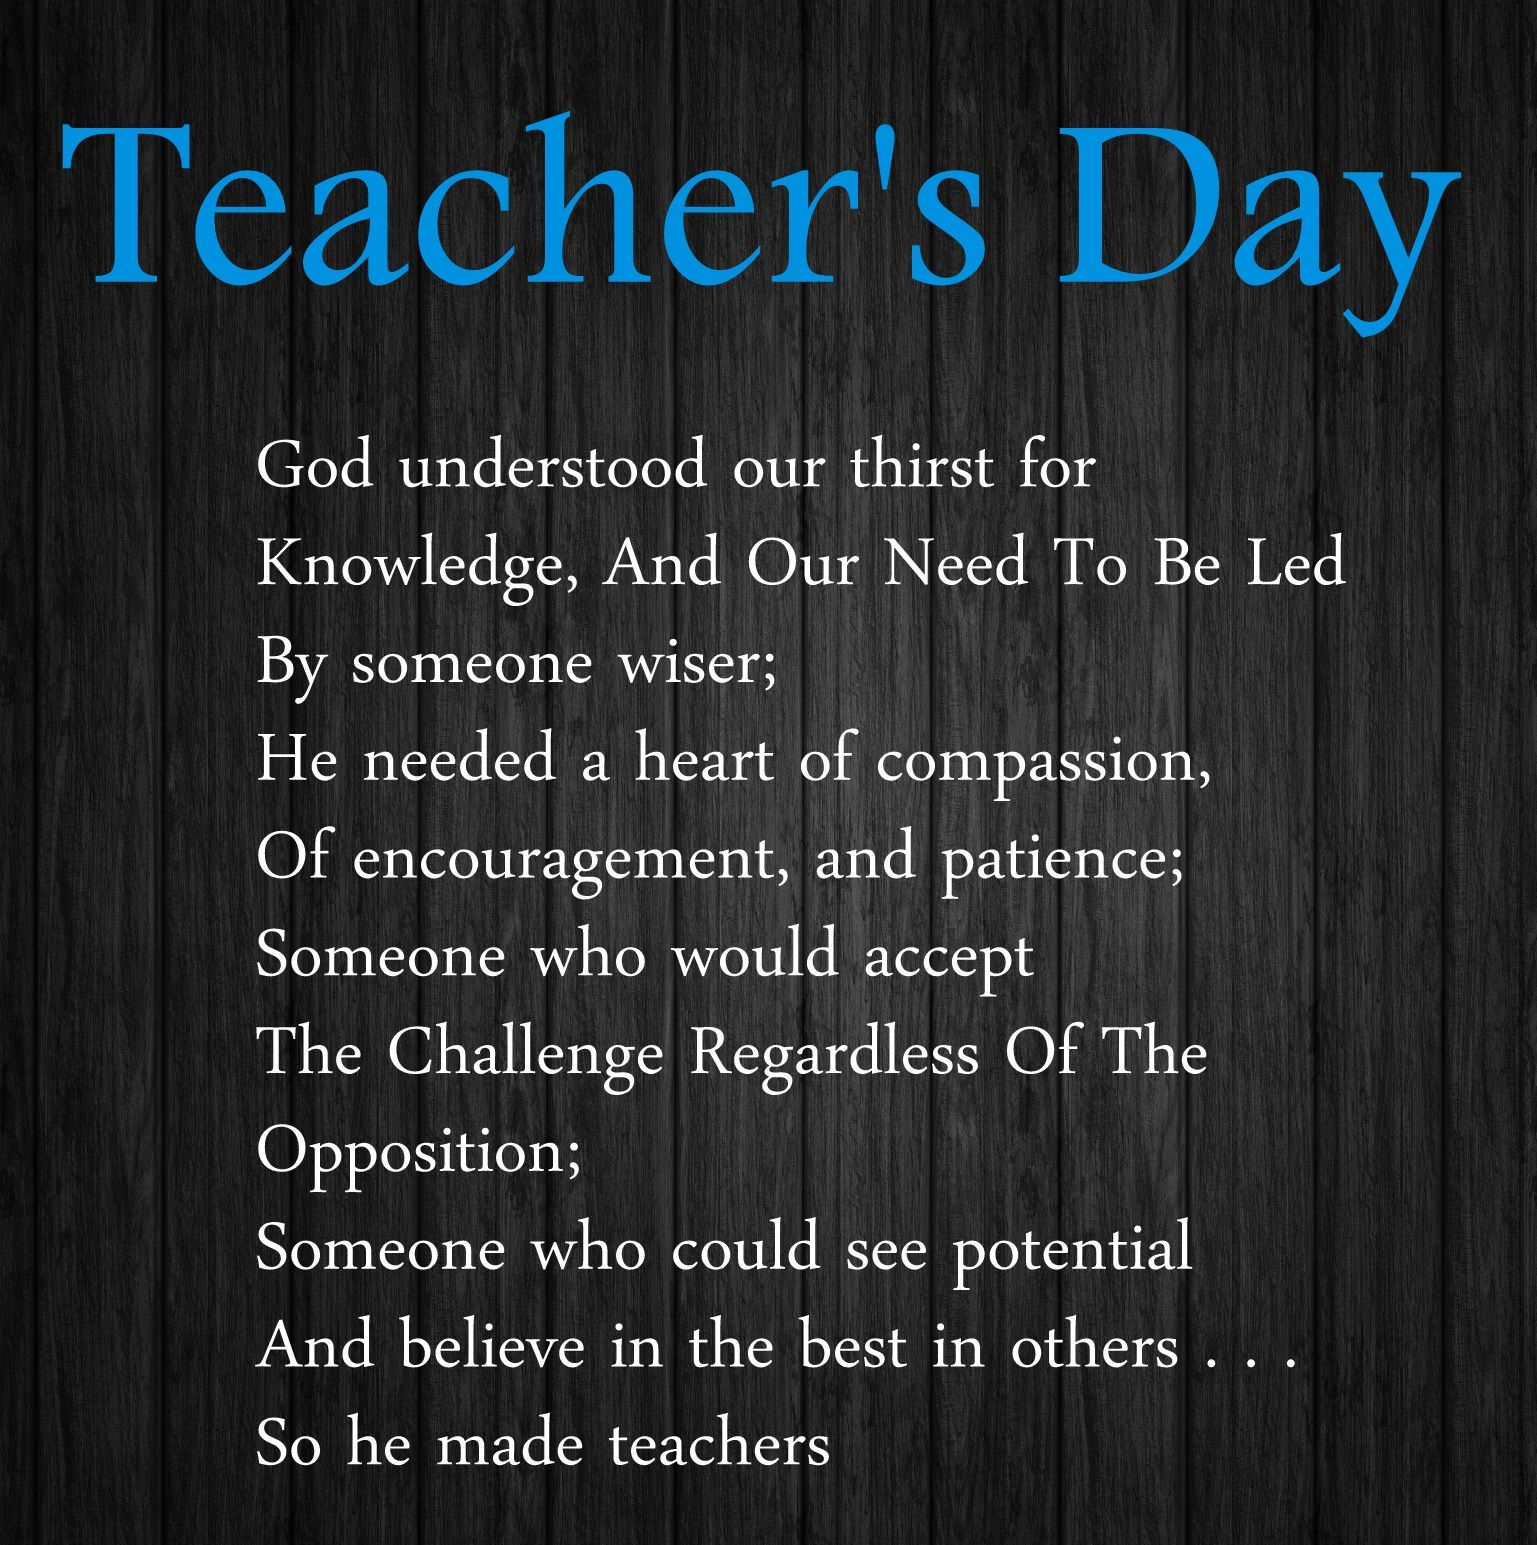 teachers day poems in english short poetry images pictures and teachers day poems in english short poetry images pictures and photos latest